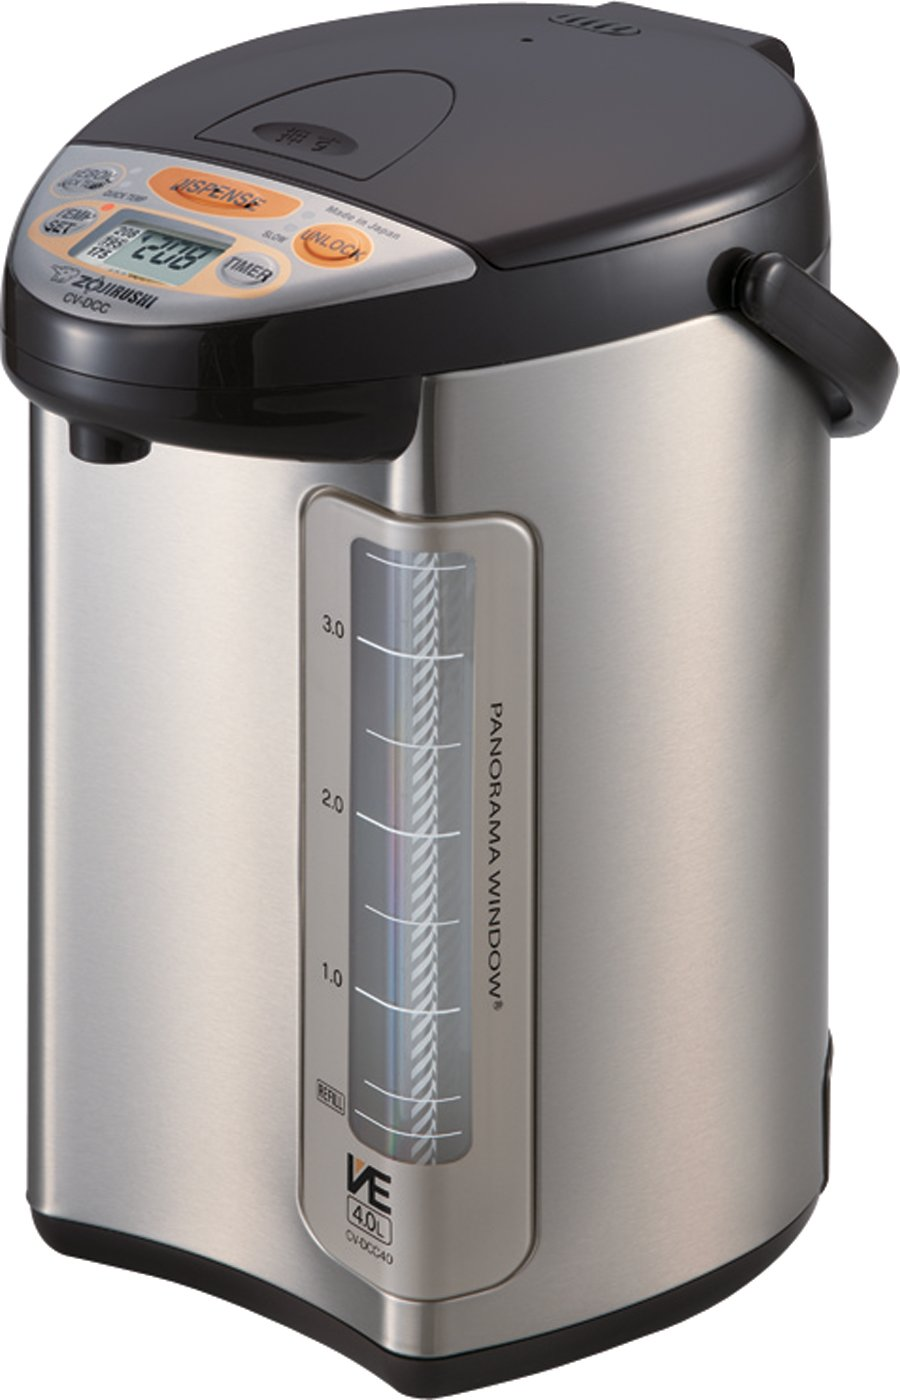 Zojirushi 586361-CV-DCC40XT America Corporation Ve Hybrid Water Boiler And Warmer, 4-Liter, Stainless Dark Brown